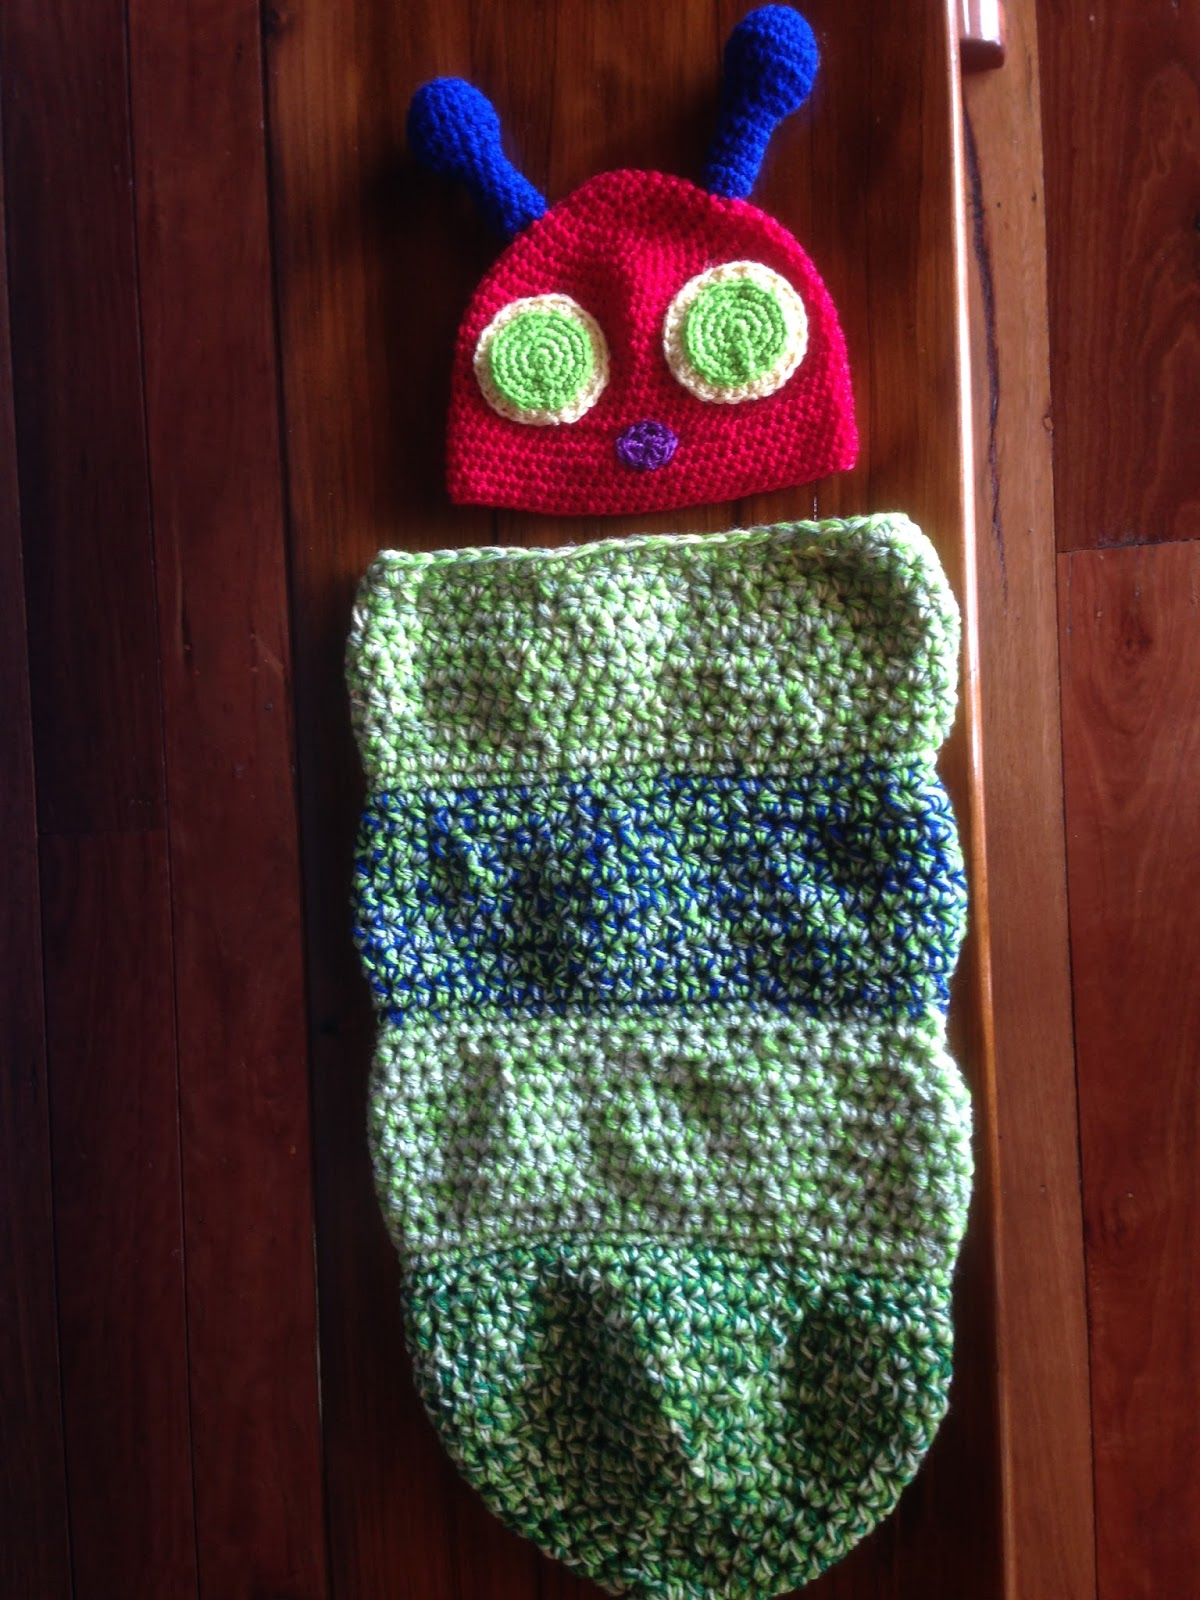 b90bc2c85 Crochet Obsession: Hungry Caterpillar Baby Cocoon and Hat crochet ...